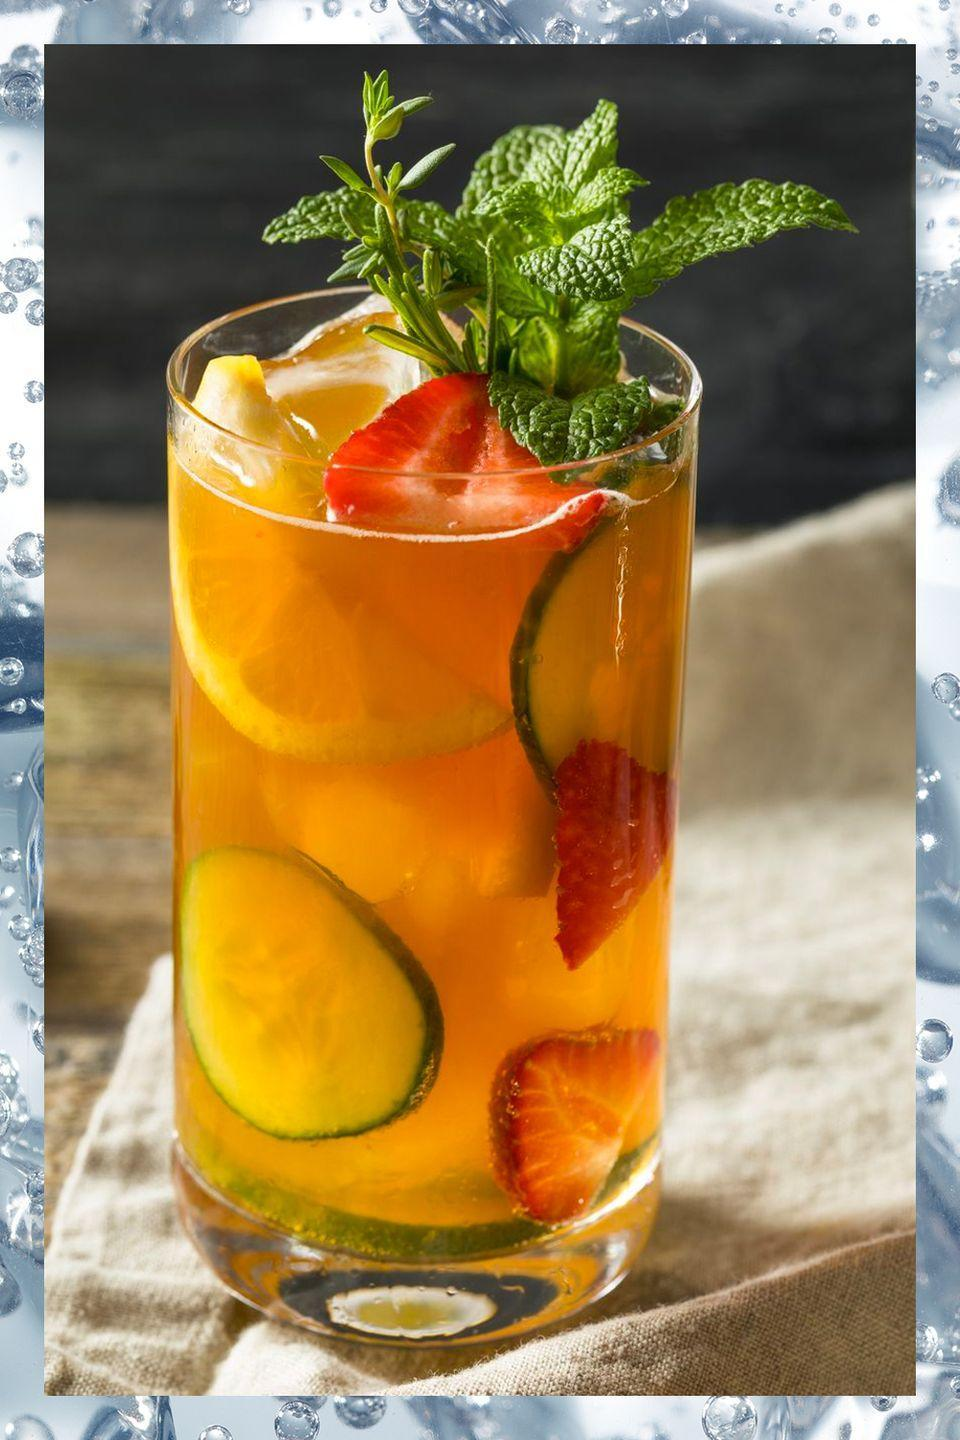 """<p>The first official Pimm's bar <a href=""""https://www.townandcountrymag.com/leisure/drinks/a9967357/pimms-cup-recipe/"""" rel=""""nofollow noopener"""" target=""""_blank"""" data-ylk=""""slk:popped up at the 1971 Wimbledon tournament"""" class=""""link rapid-noclick-resp"""">popped up at the 1971 Wimbledon tournament</a>, and now more than 80,000 pints of the quintessential British summer cocktail are served to spectators every year. Here's the official recipe courtesy of Pimm's:</p><p>- 50 ml (about 1.75 oz) Pimm's No.1<br>- 150 ml (about 5 oz) lemonade<br>- Mint, orange, strawberries<br>- Cucumber to garnish</p><p><em>Pile all the ingredients in a tall glass, mix, and sip.</em></p>"""